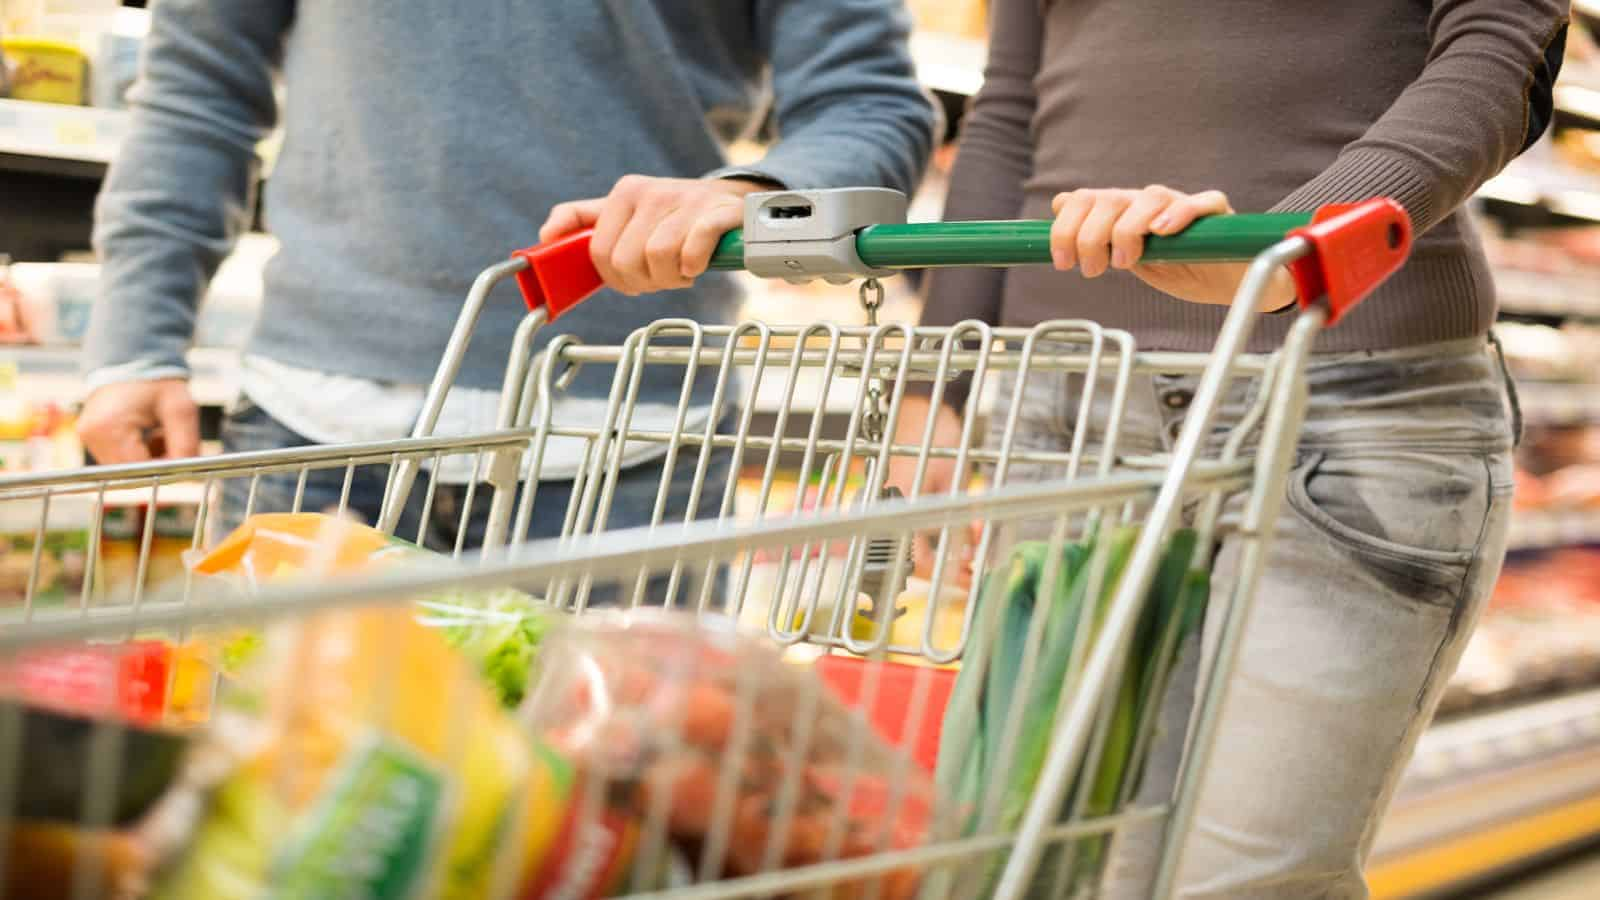 Shopping Com Au Should You Buy Coles Or Woolworths Shares Motley Fool Australia